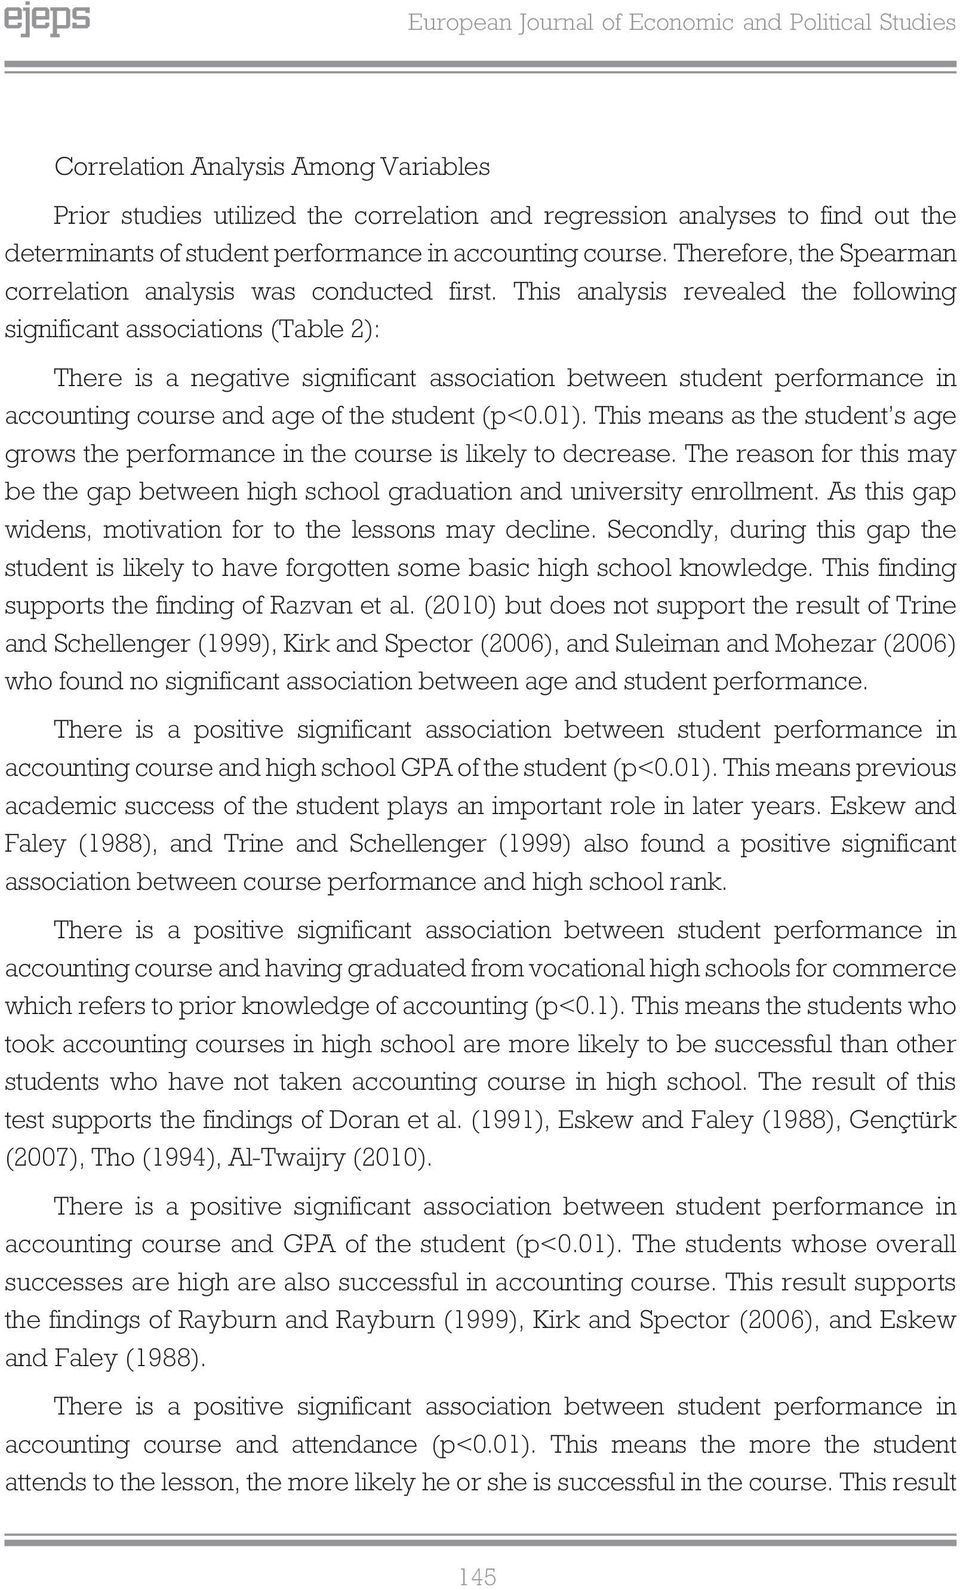 This analysis revealed the following significant associations (Table 2): There is a negative significant association between student performance in accounting course and age of the student (p<0.01).